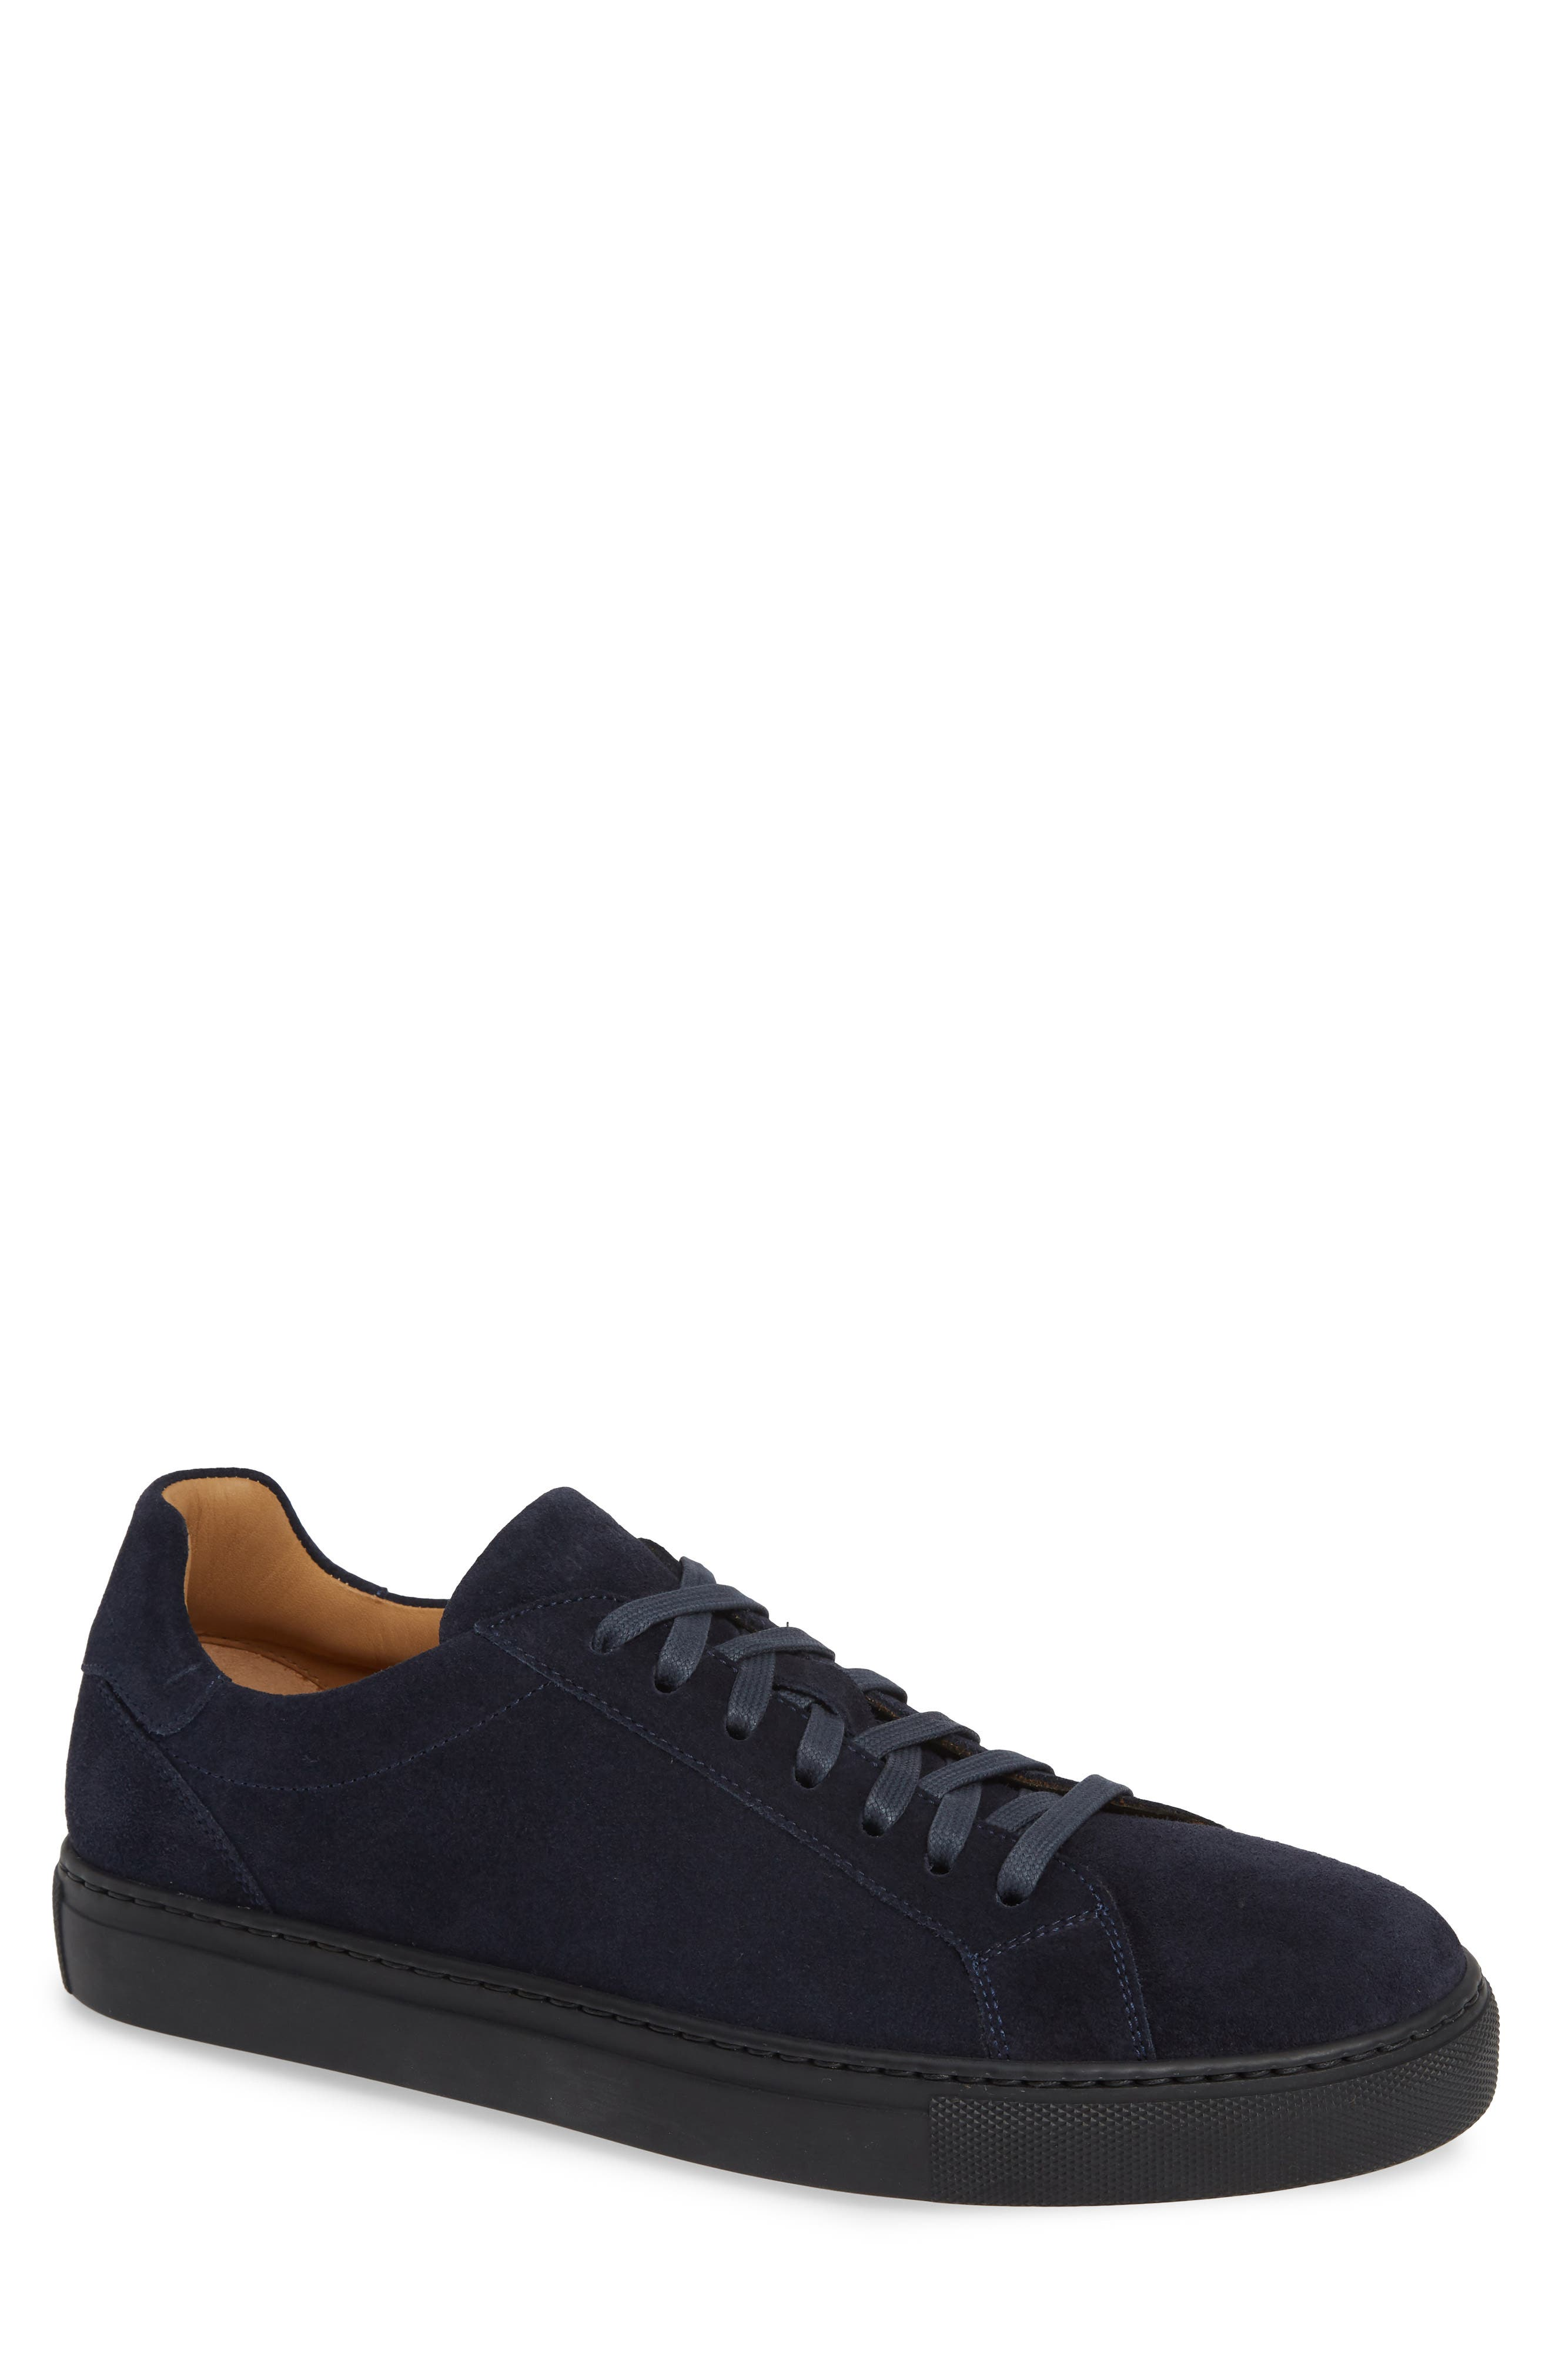 Fede Sneaker,                             Main thumbnail 1, color,                             NAVY SUEDE/ LEATHER